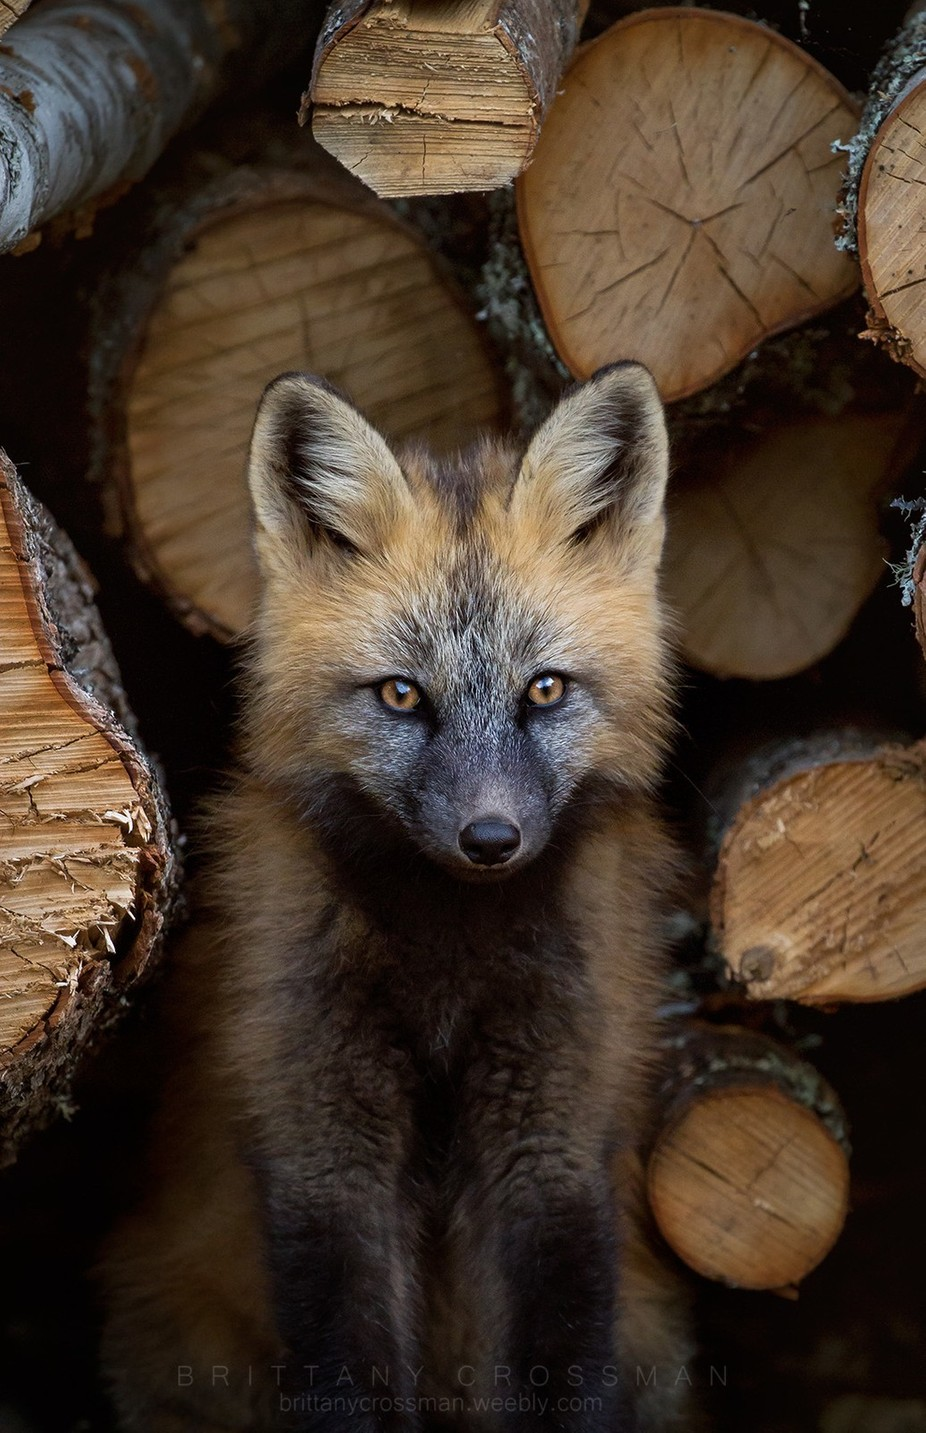 Cross Fox Kit by bkcrossman - Monthly Pro Vol 27 Photo Contest